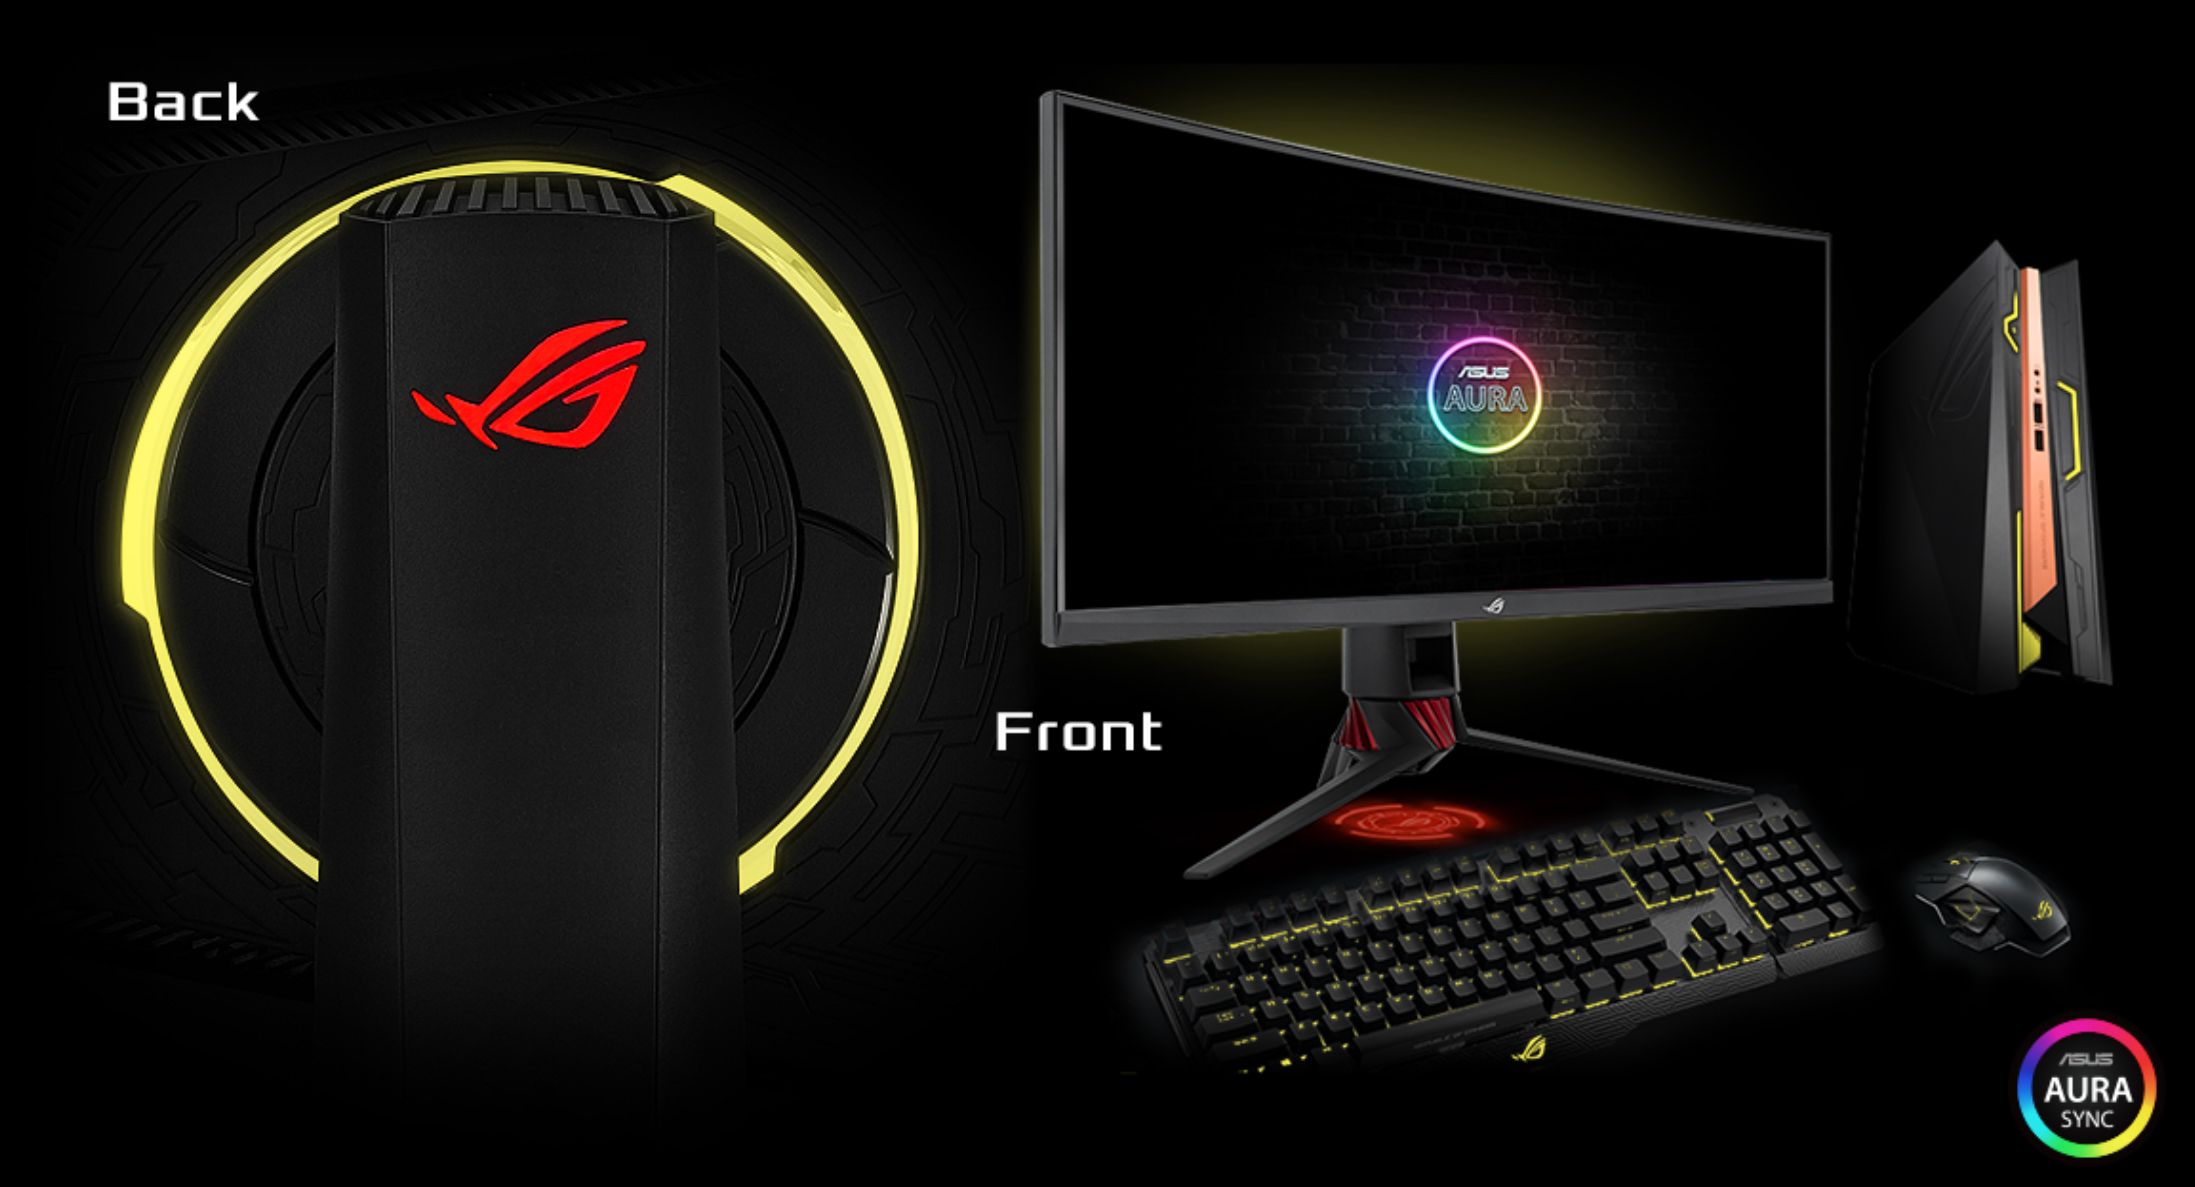 ASUS Announces ROG Strix XG32VQ and ROG Strix XG35VQ: Large, Curved